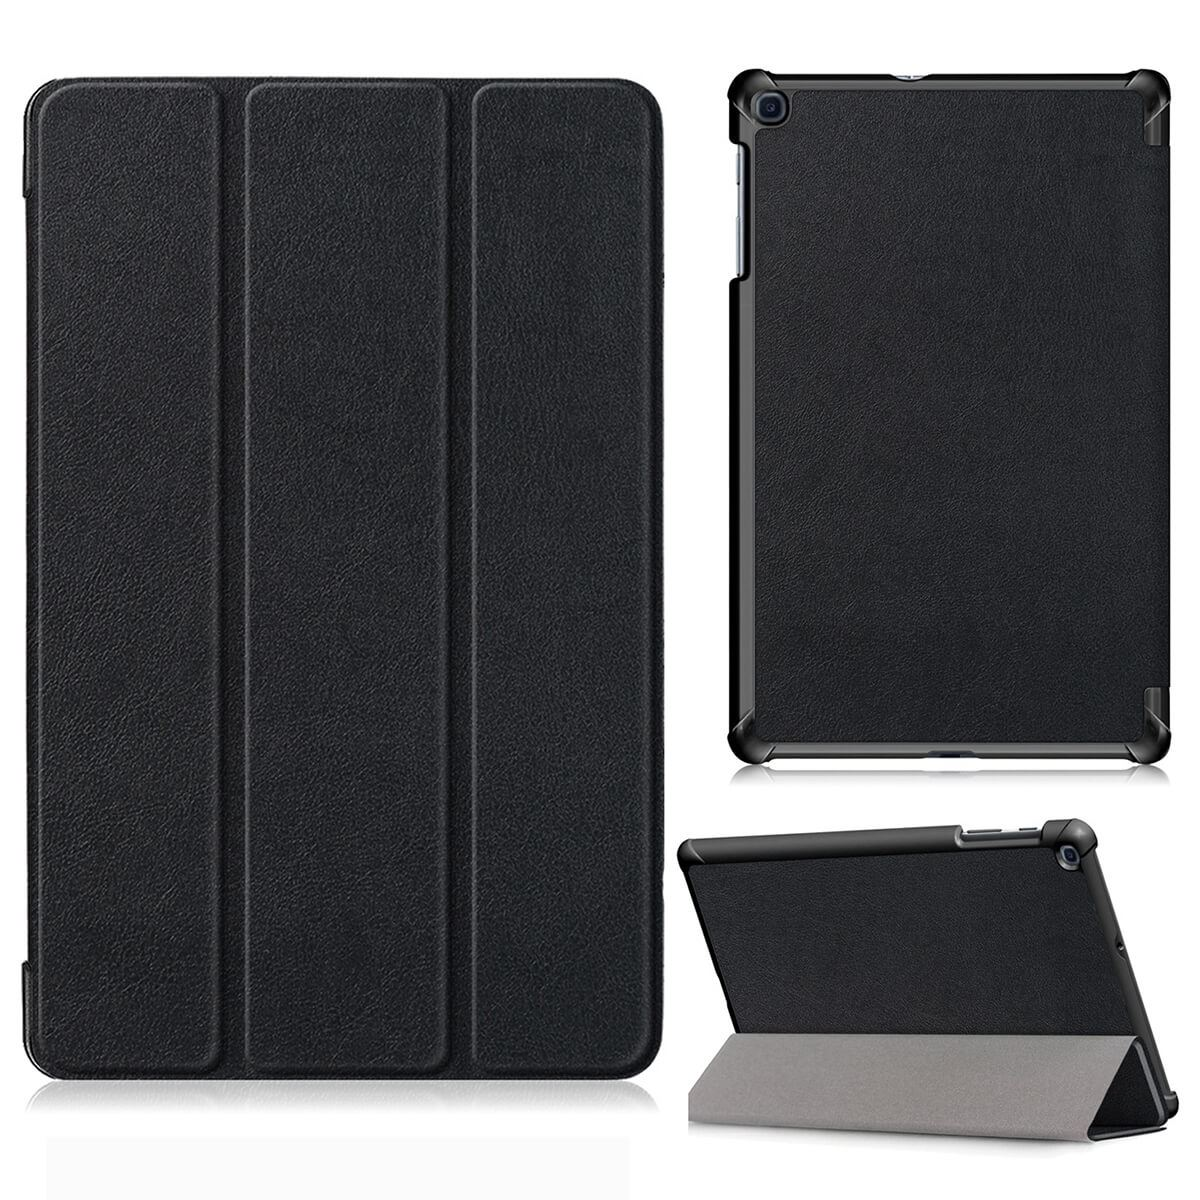 Flip-Cover-Trifold-Case-For-T510-T515-Samsung-Galaxy-Tab-A-2019-10-1-Full-Body thumbnail 16